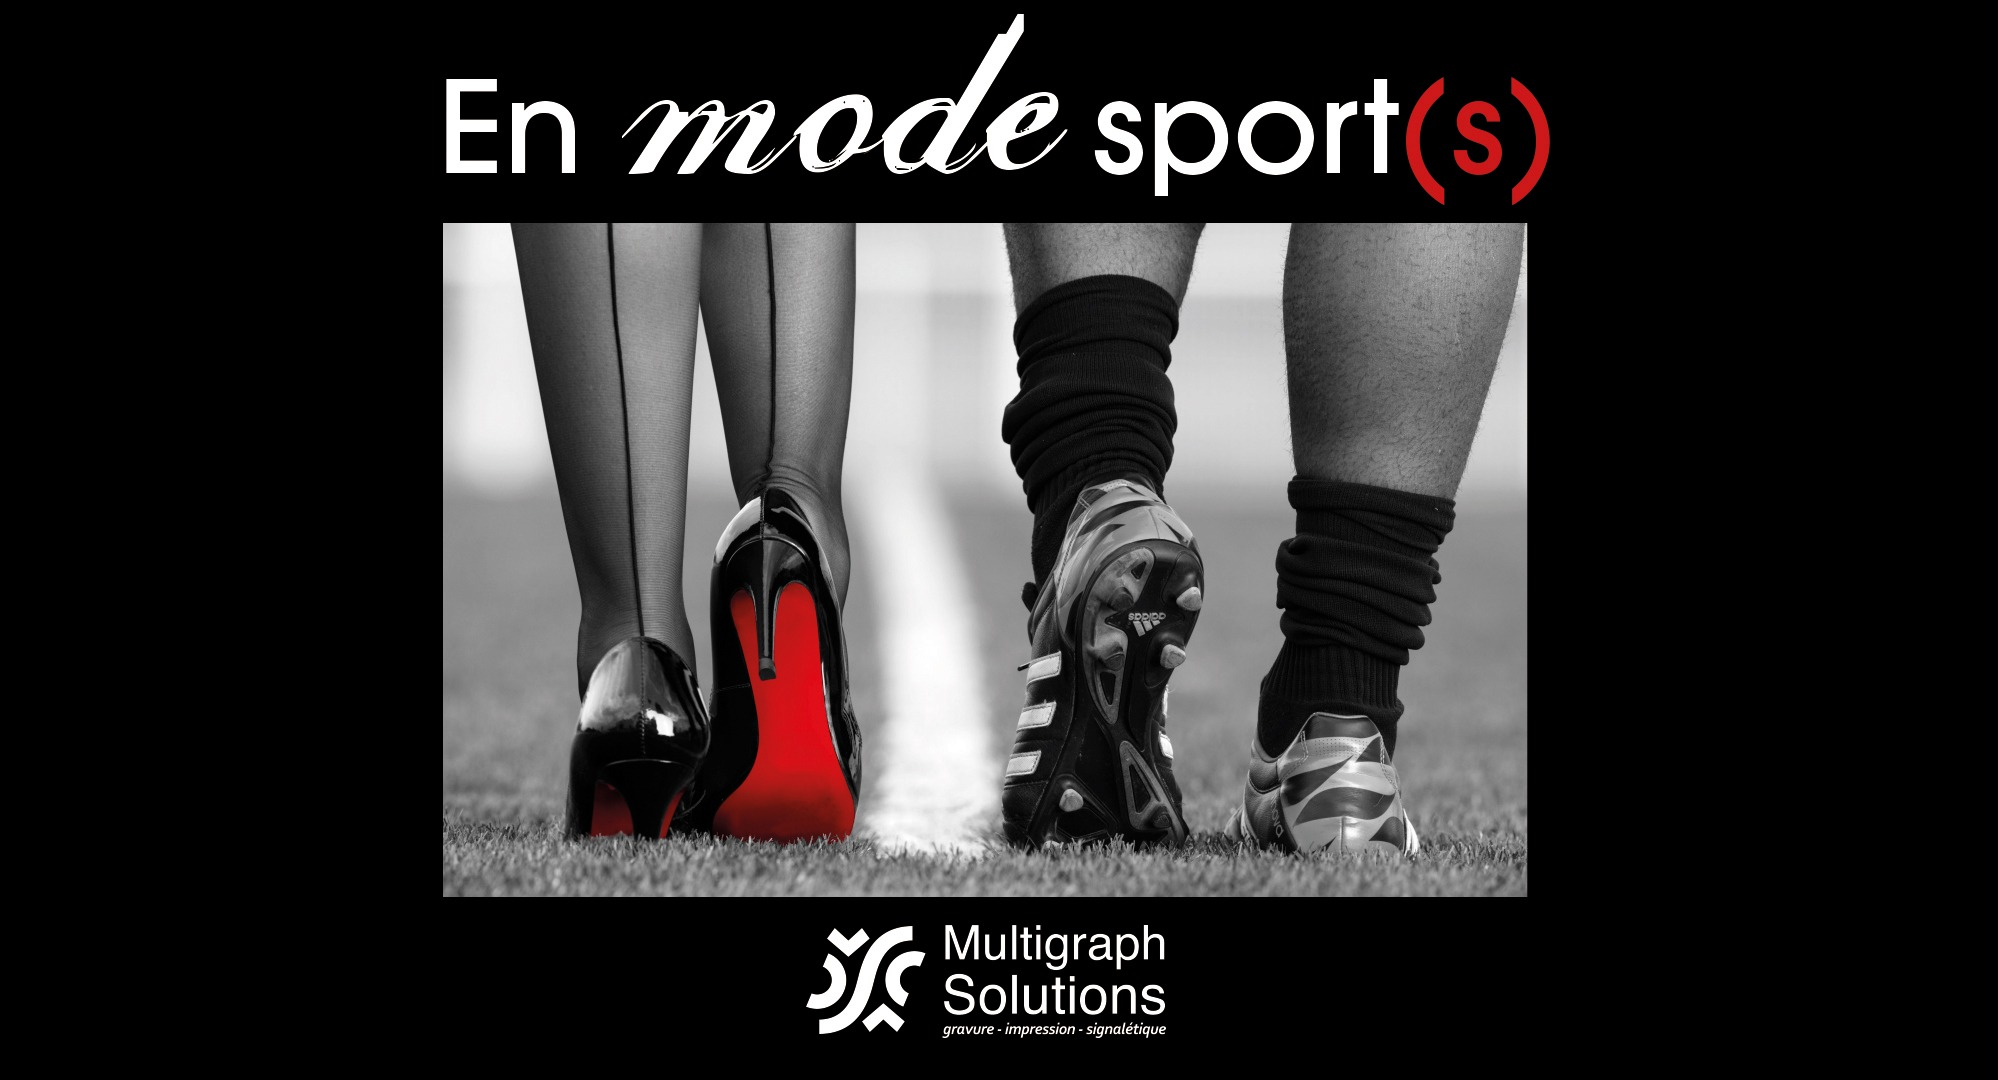 en-mode-sport-multigraph-solution